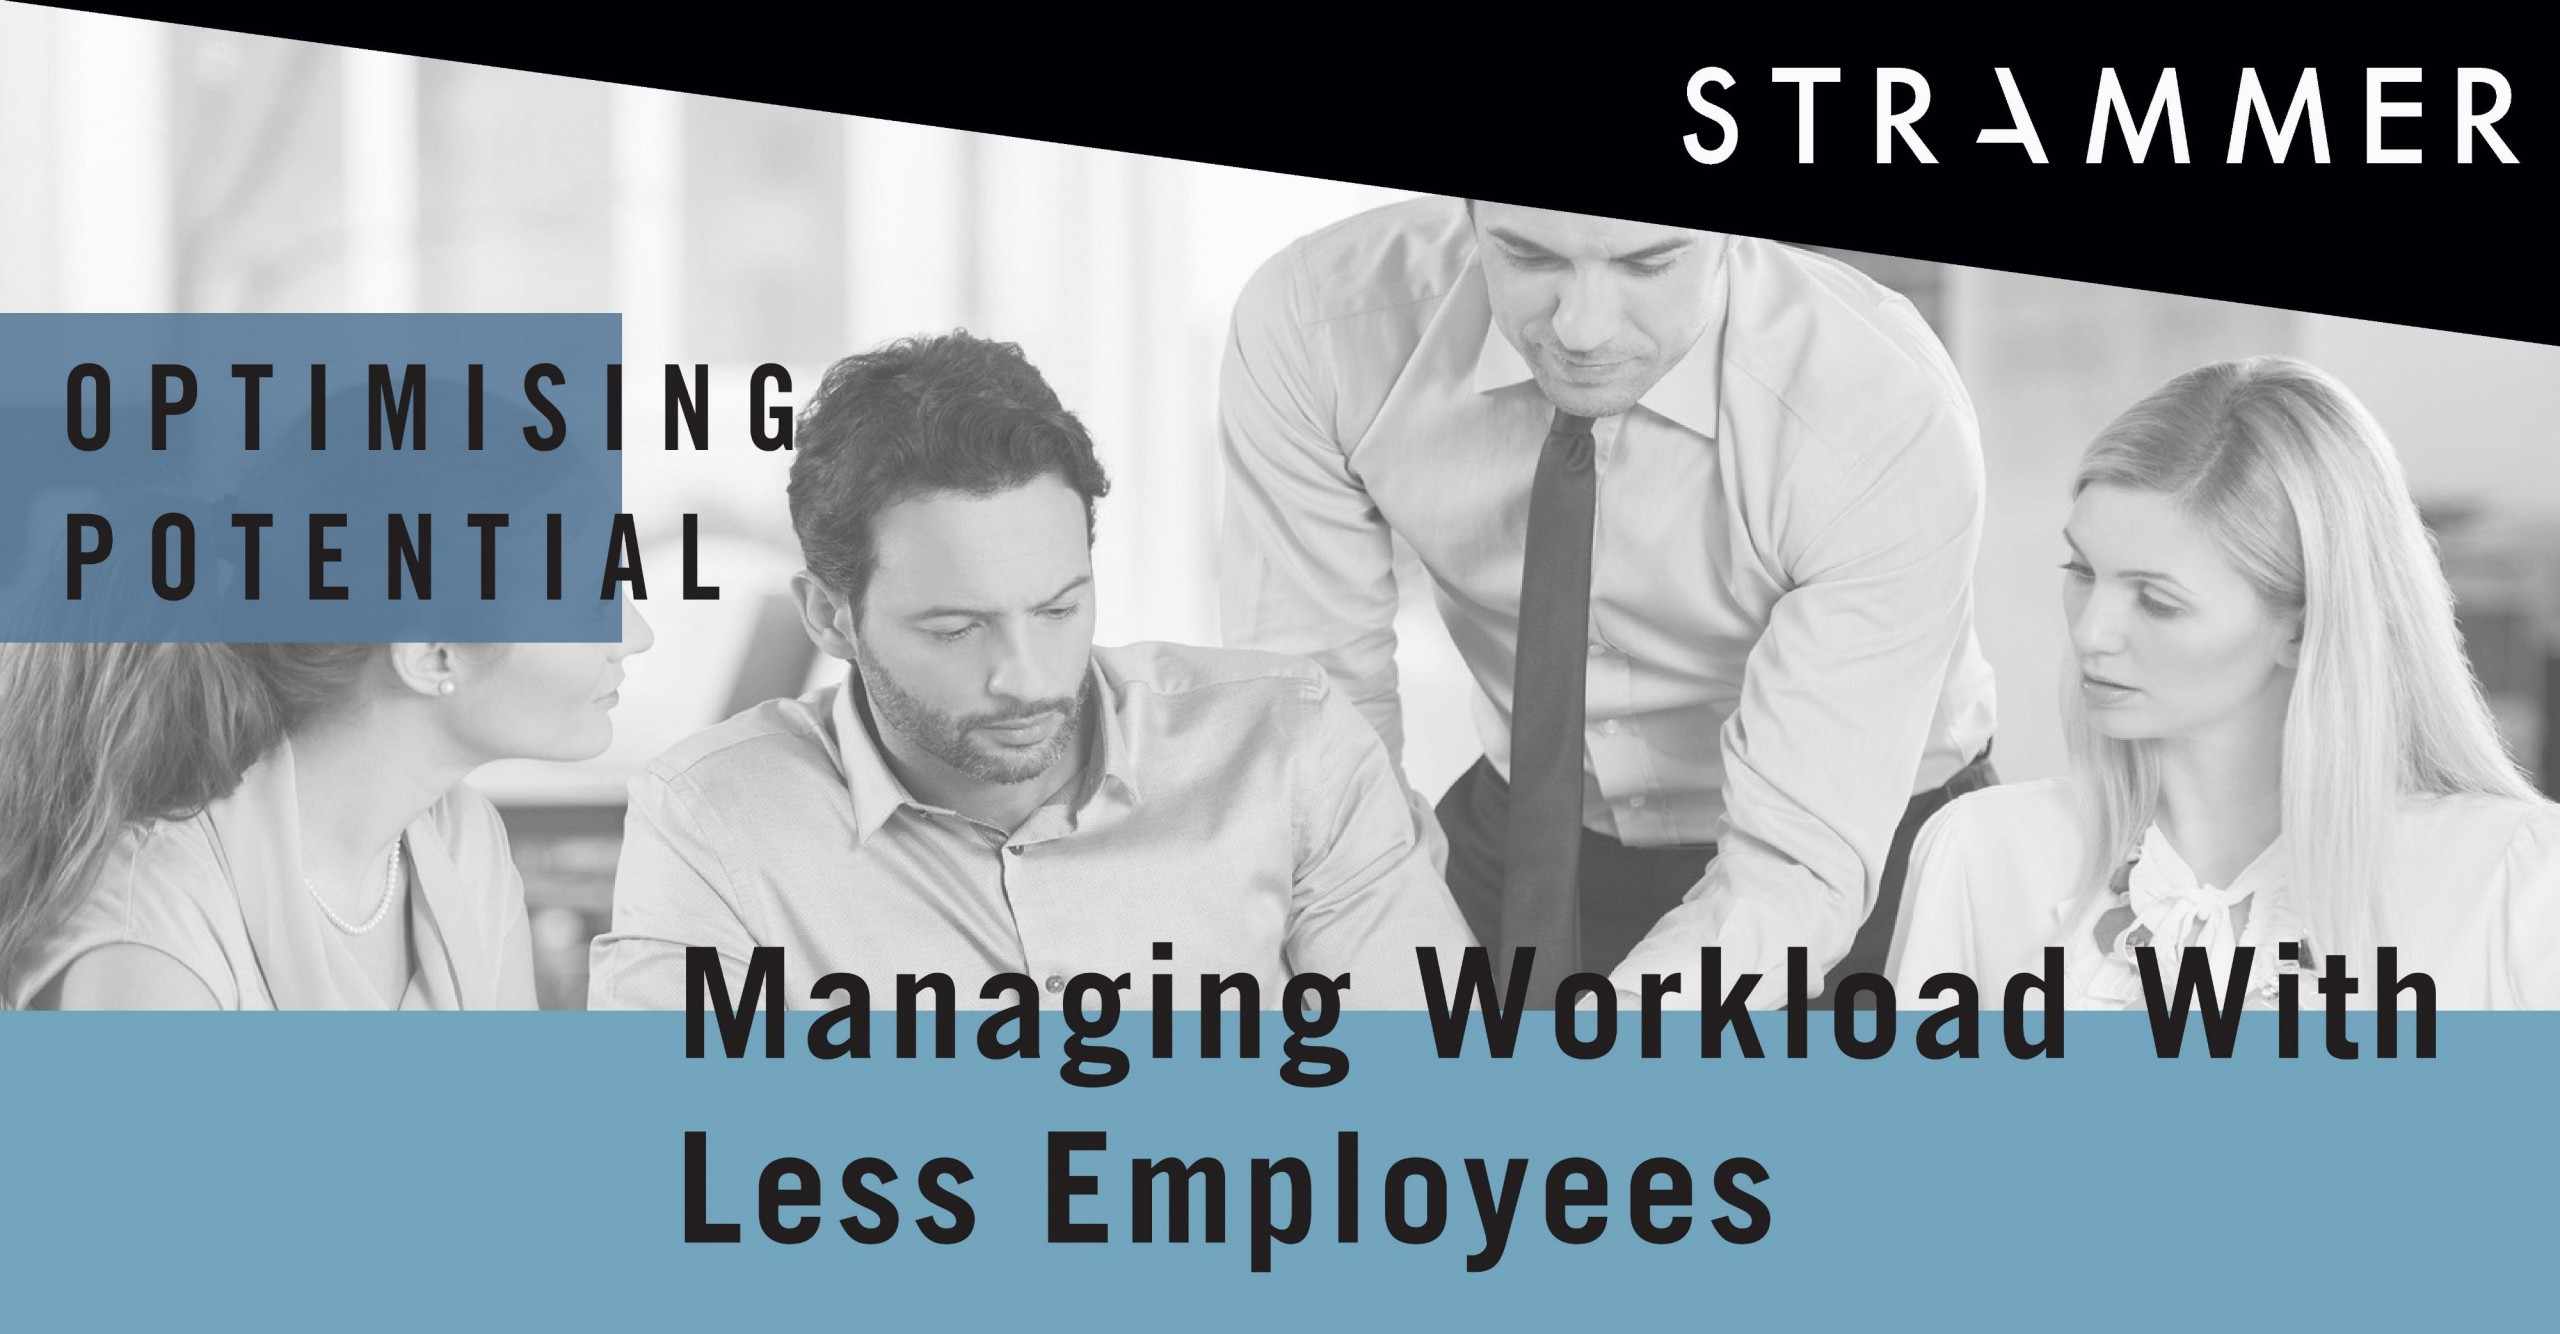 Handling Workload With Less Employees